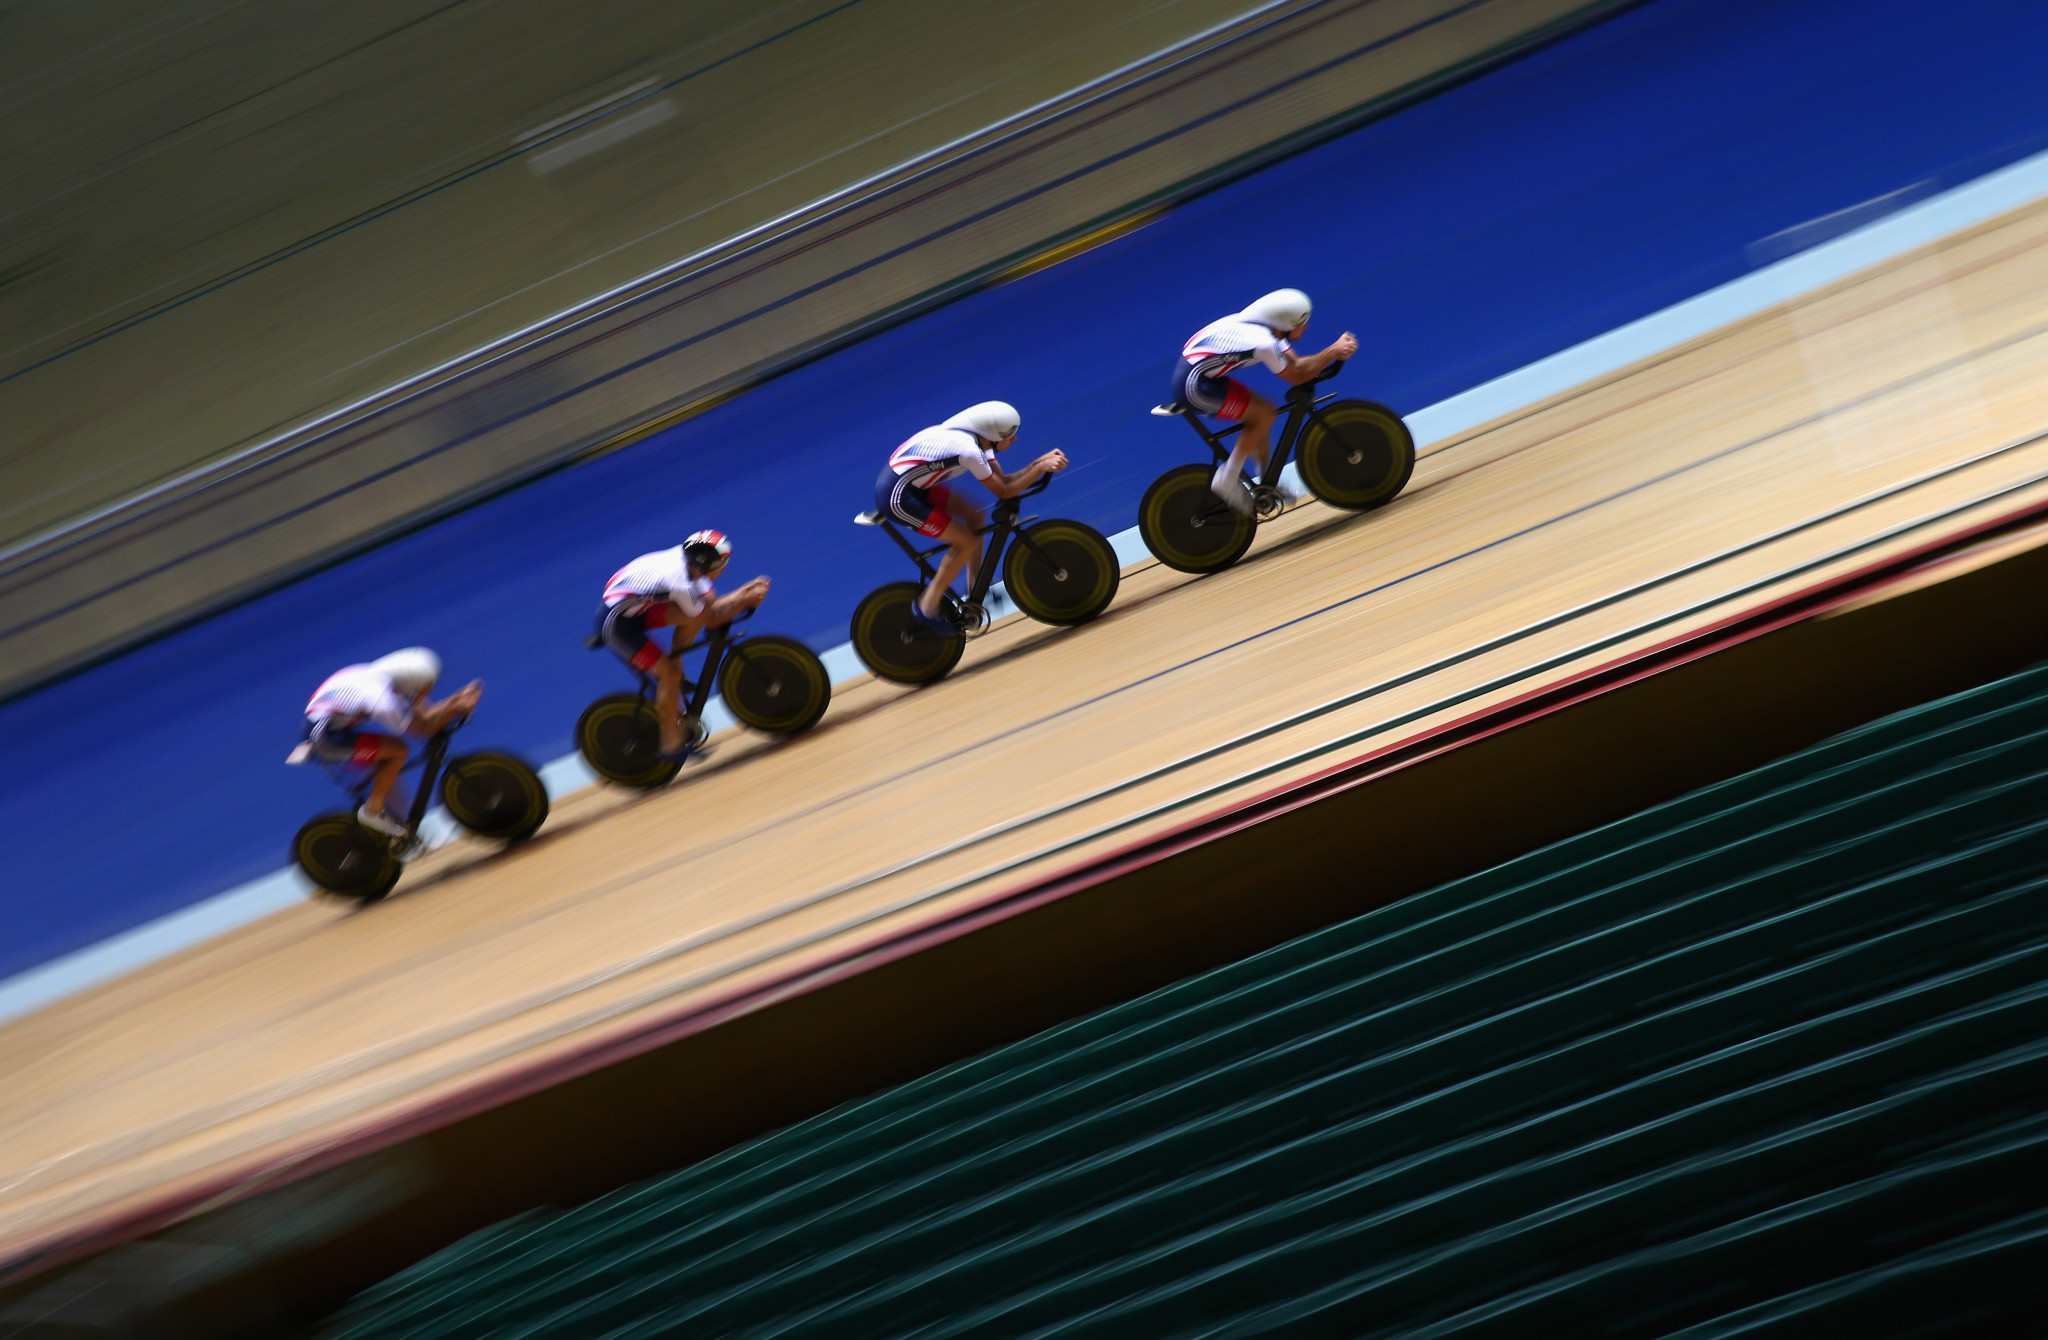 British Cycling defends decision to hold pre-Tokyo 2020 track meeting during lockdown